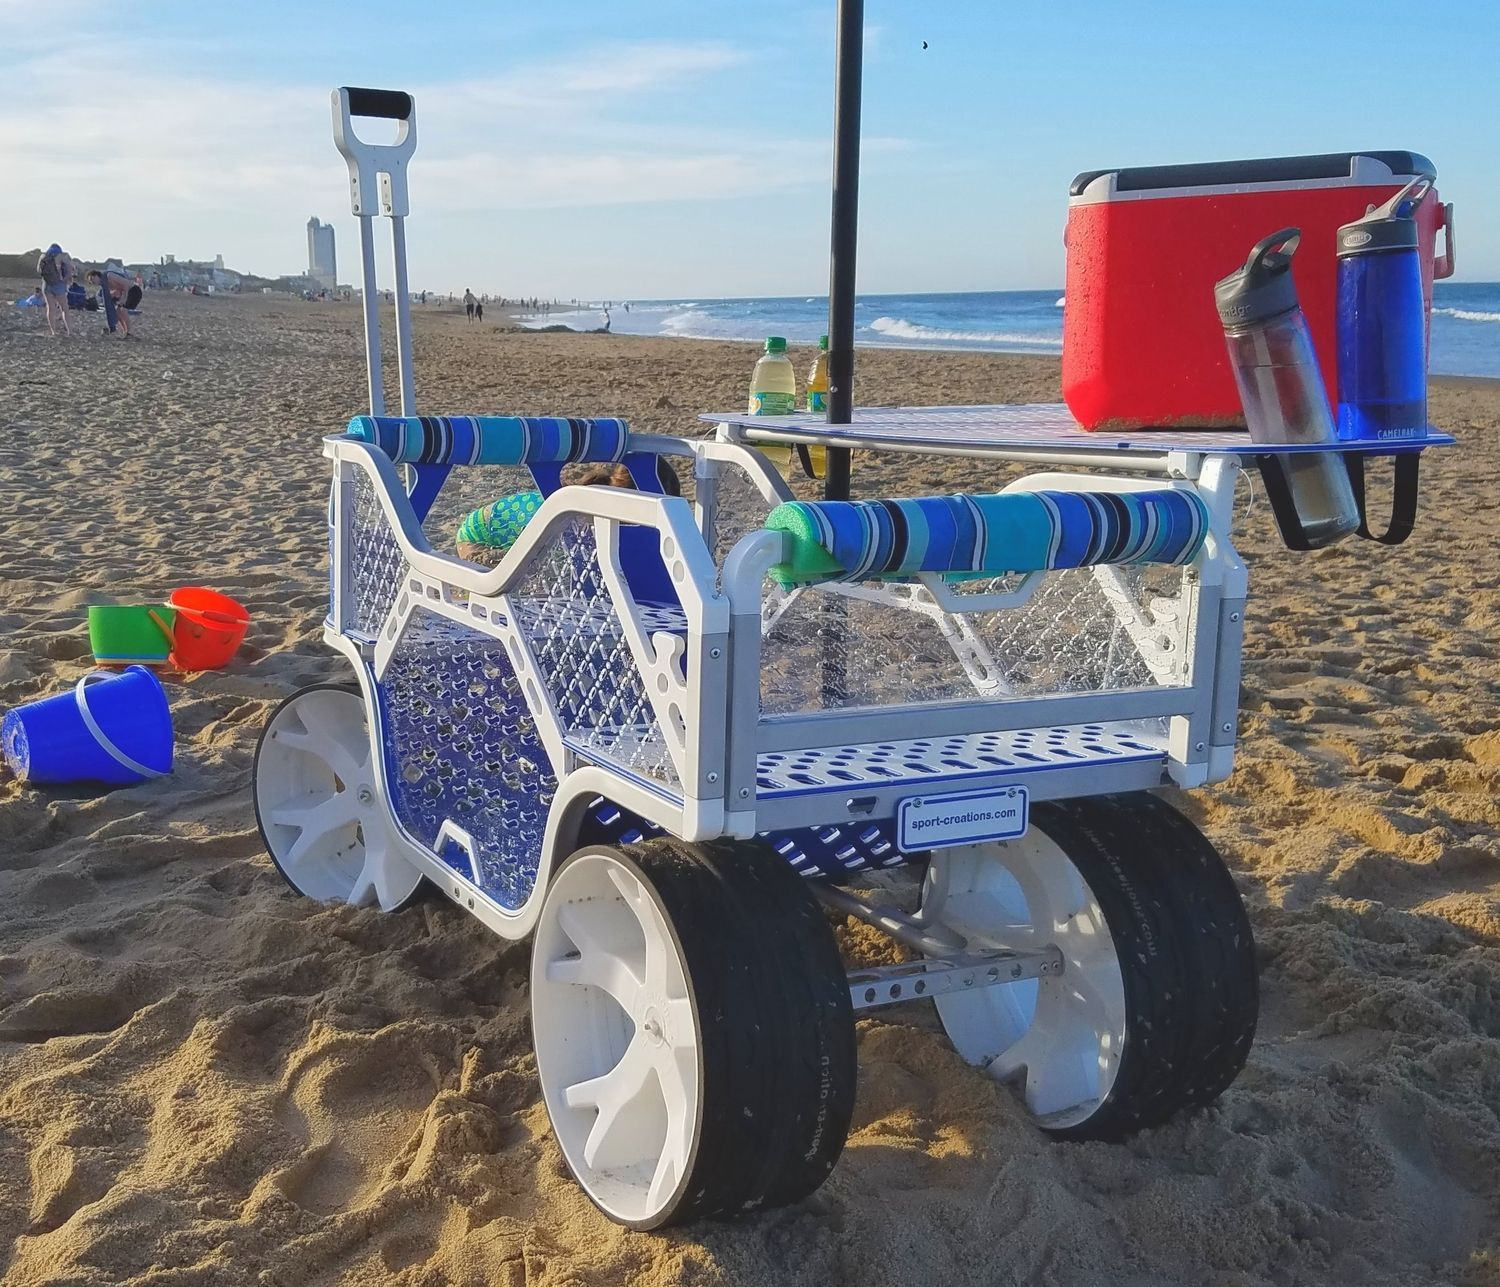 6a84f03482ad Top 10 Best Beach Cooler With Sand Wheels Comparison   Reviews ...